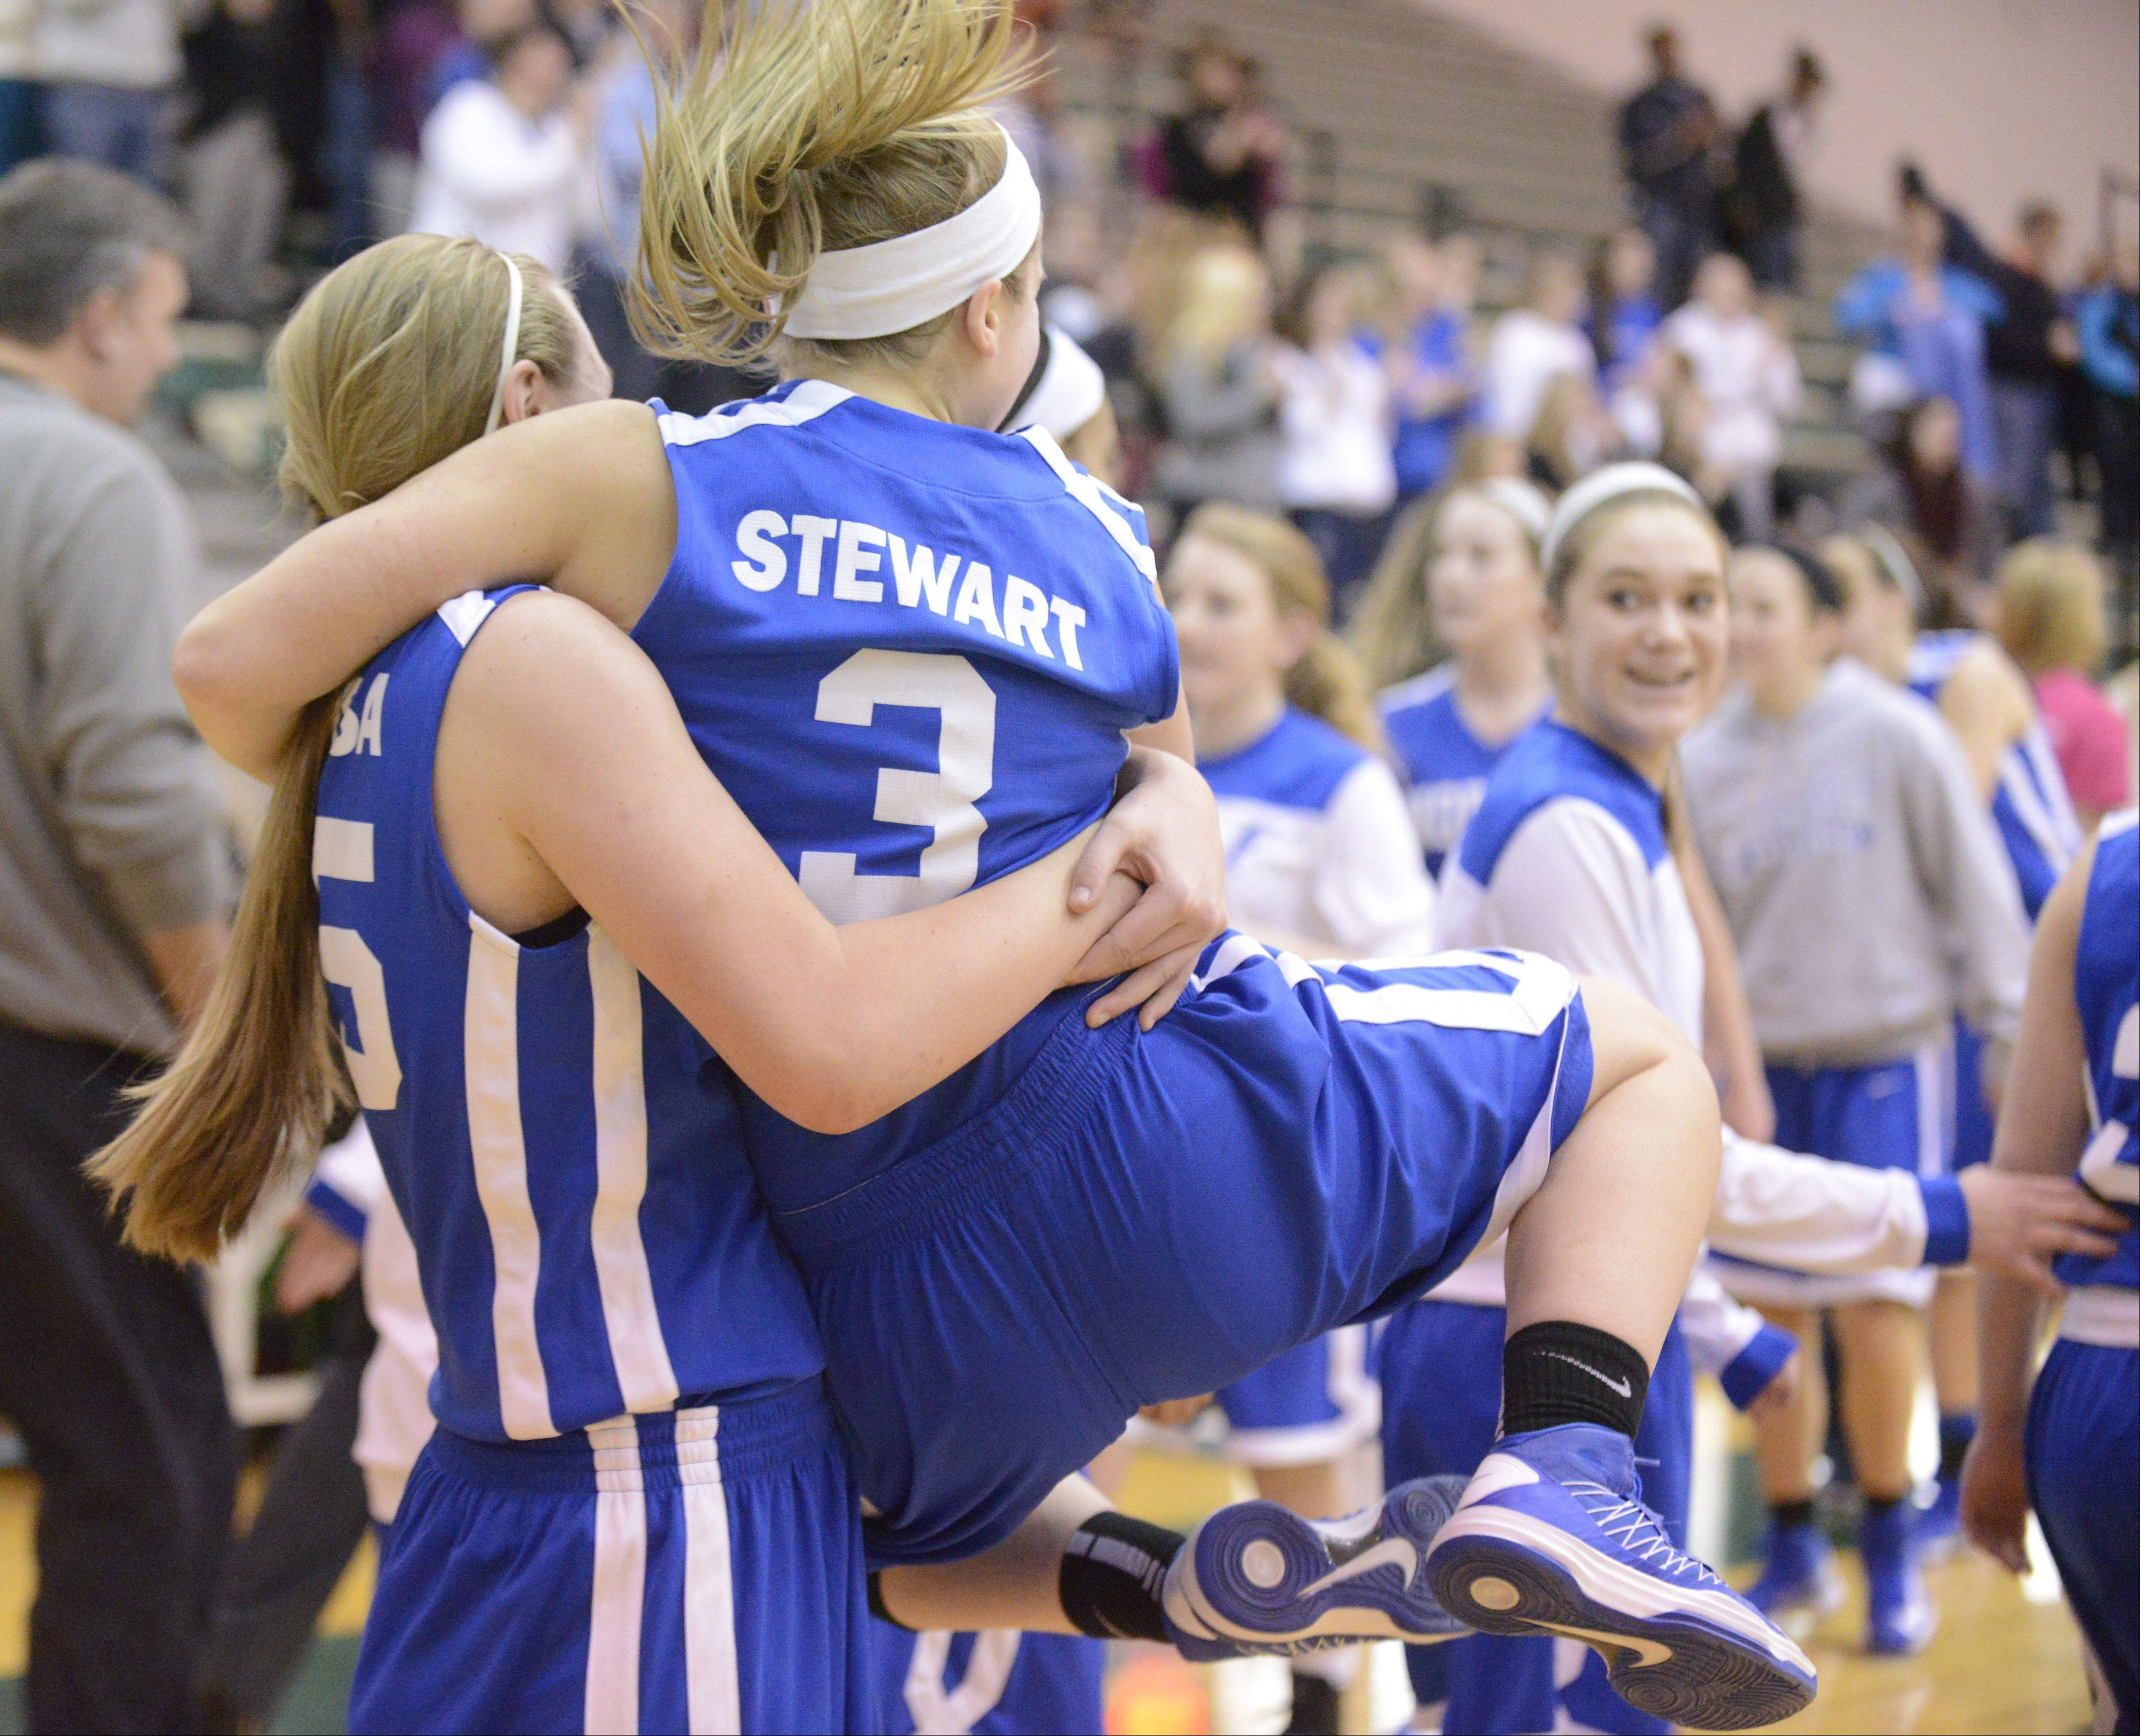 Wheaton North's Mandy Traversa lifts teammate Reilly Stewart as she clicks her heels after their win over Schaumburg.